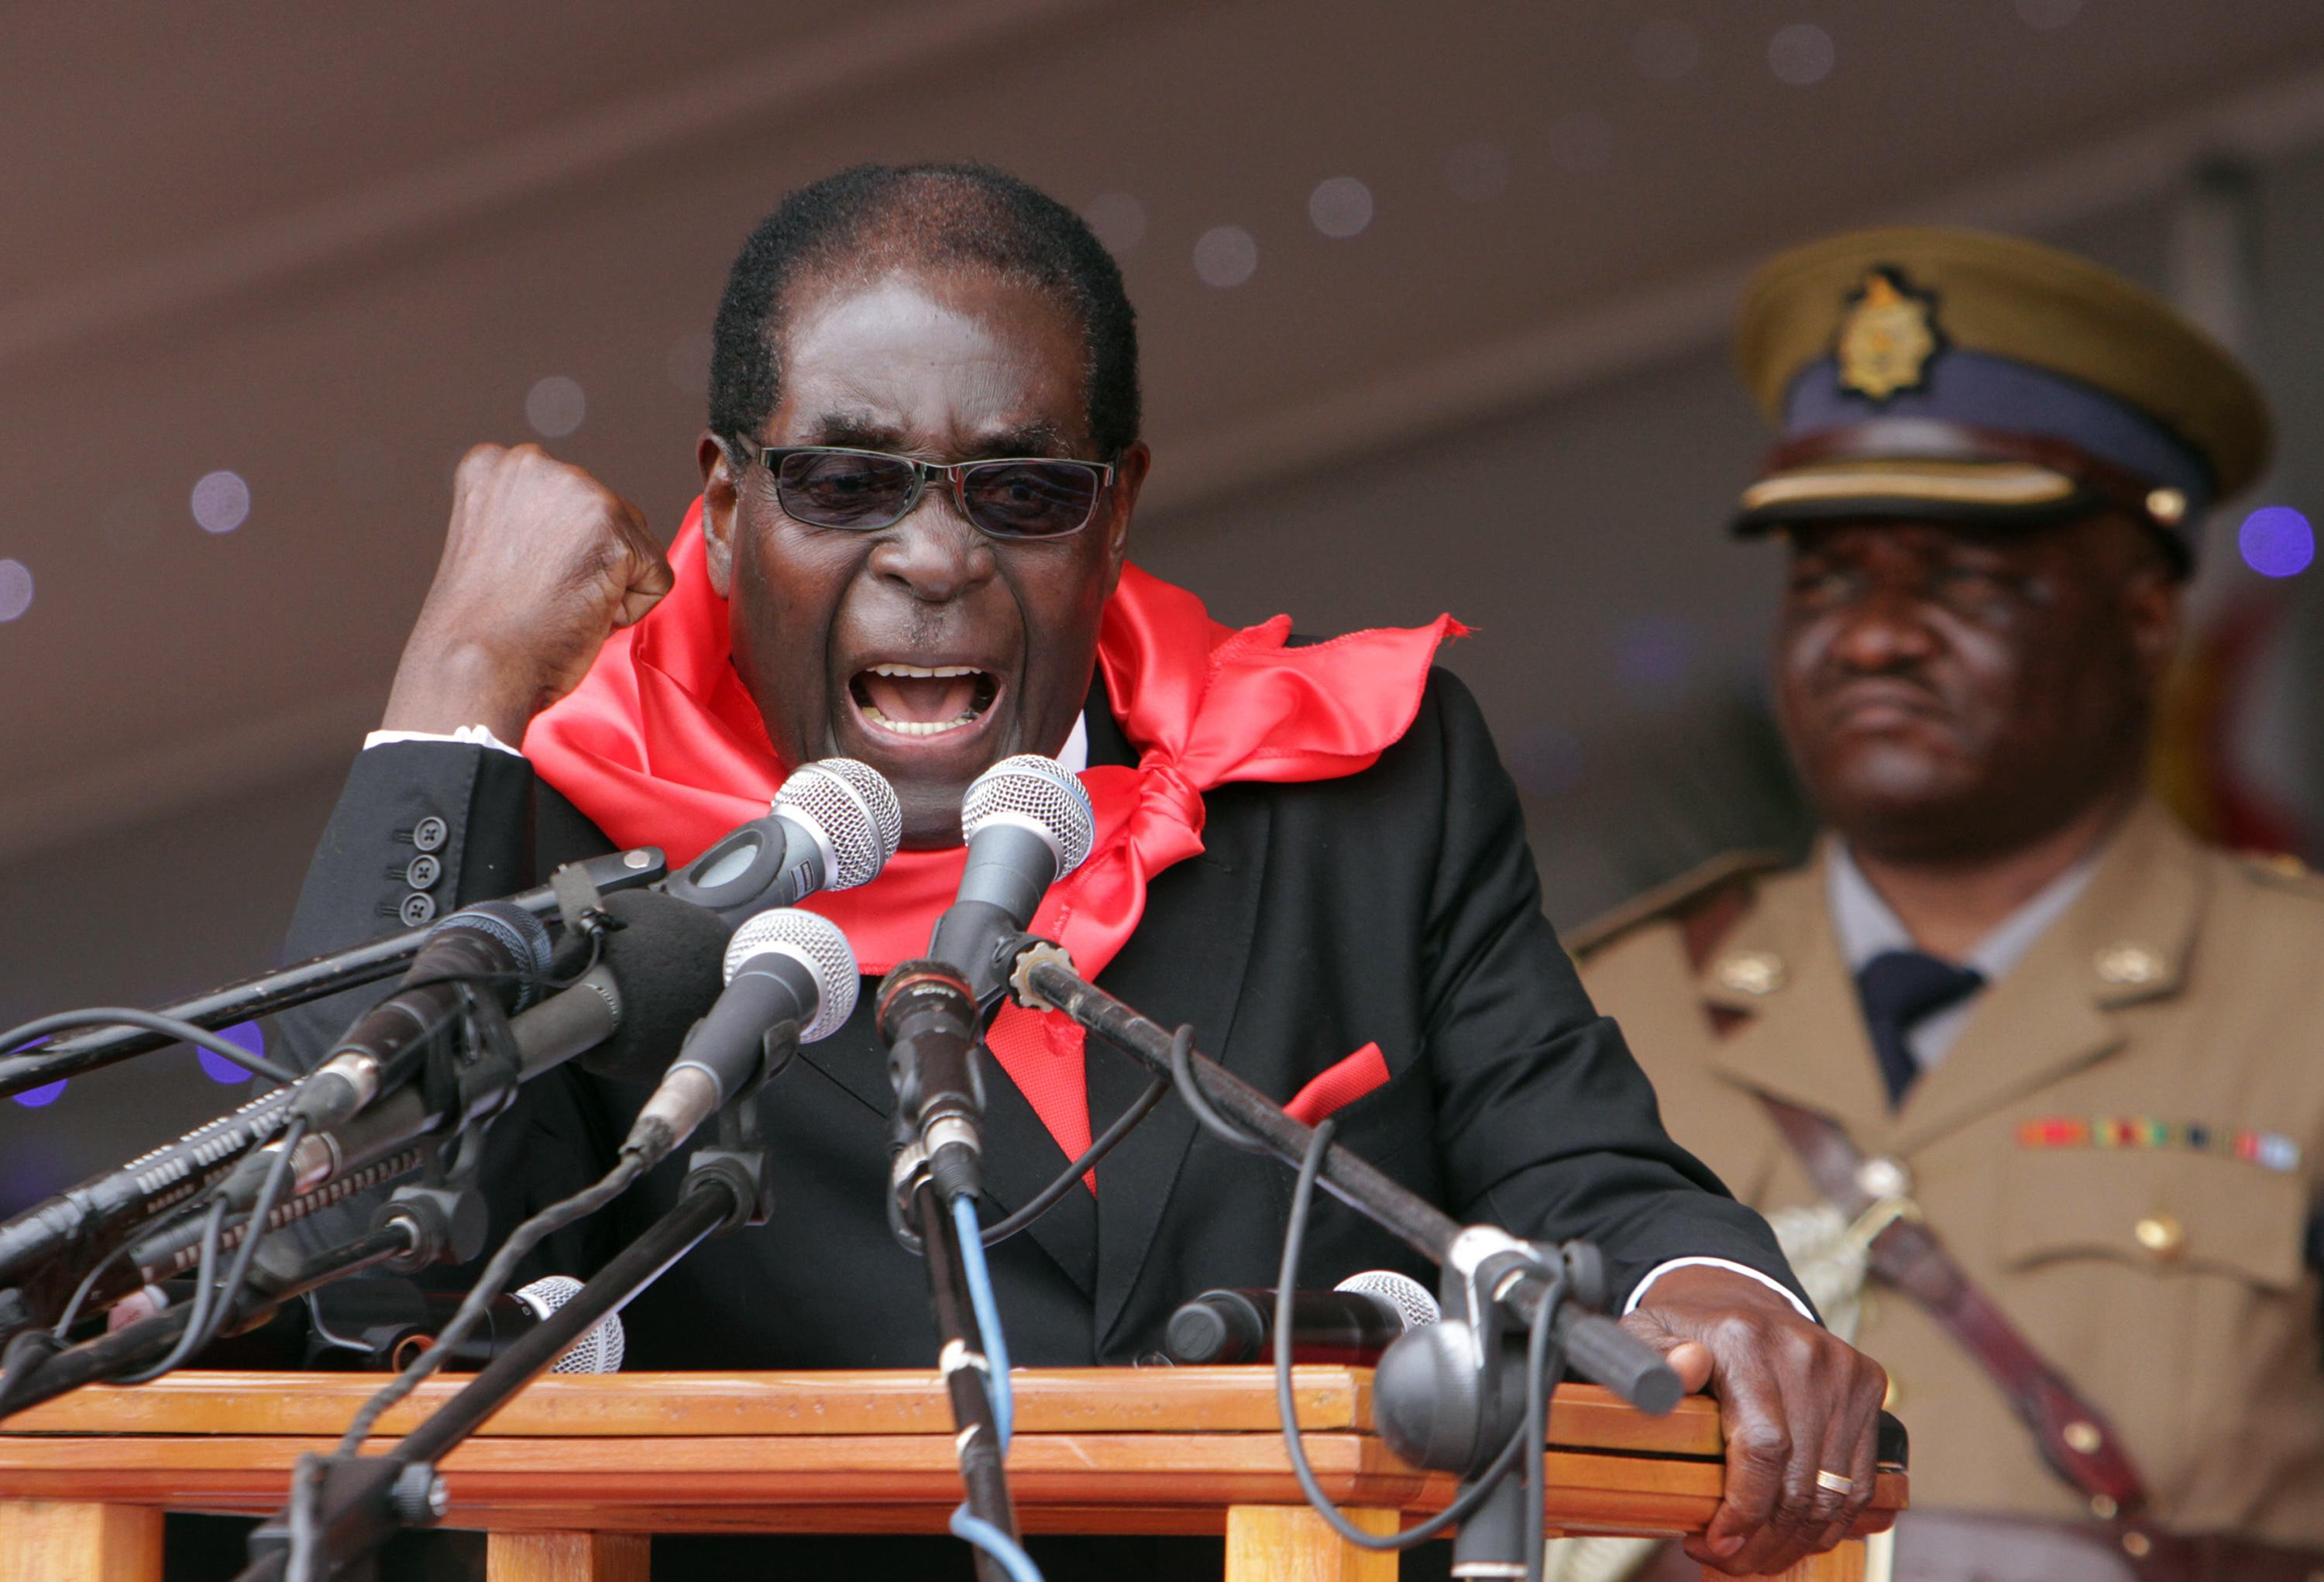 Zimbabwe's President Robert Mugabe delivers his speech during celebrations to mark his 90th birthday in Marondera about 100 kilometres east of Harare, Sunday, Feb. 23, 2014. Mugabe who is Africa's oldest leader has been in power in the Southern African nation since 1980. (AP (AP Photo/Tsvangirayi Mukwazhi)